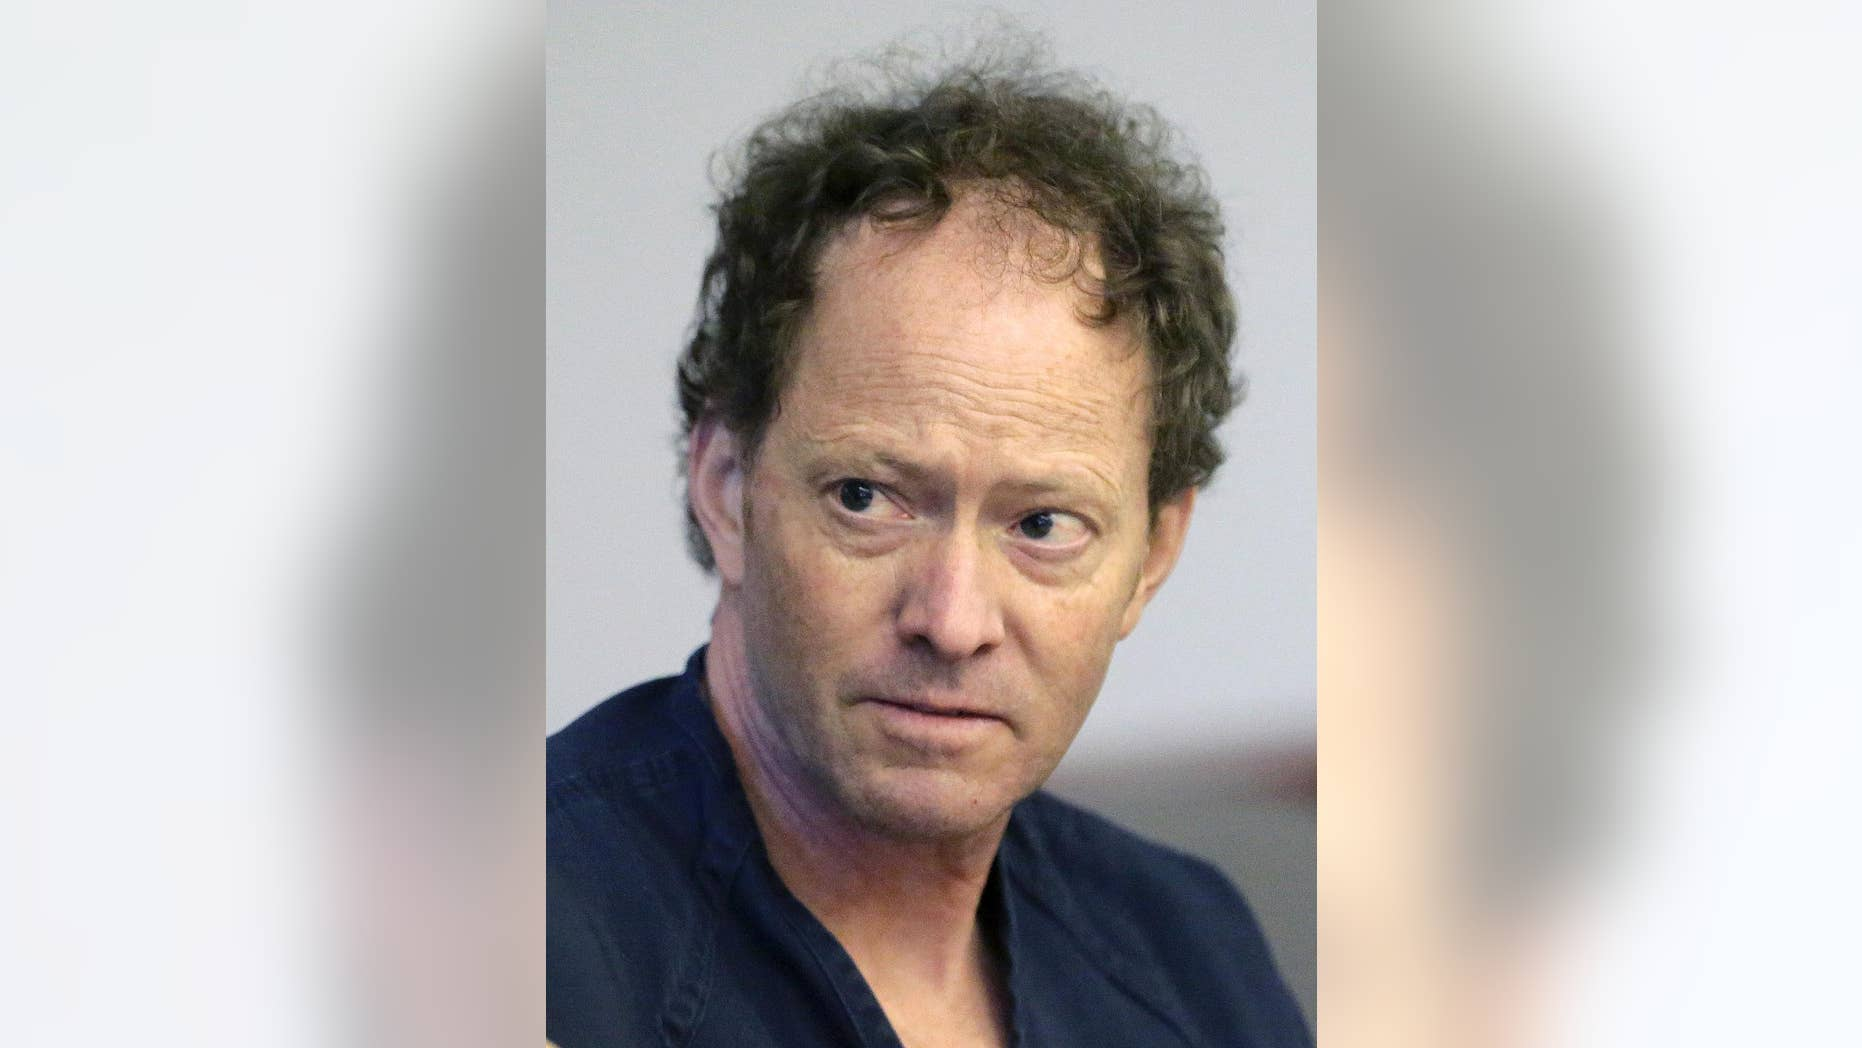 FILE - In this May 9, 2014, file photo, John Brickman Wall, a Salt Lake City pediatrician, appears in court in Salt Lake City. Jurors convicted Wall of murder Thursday, March 12, 2015, in the death of his former wife Uta von Schwedler. (AP Photo/Rick Bowmer, Pool, File)